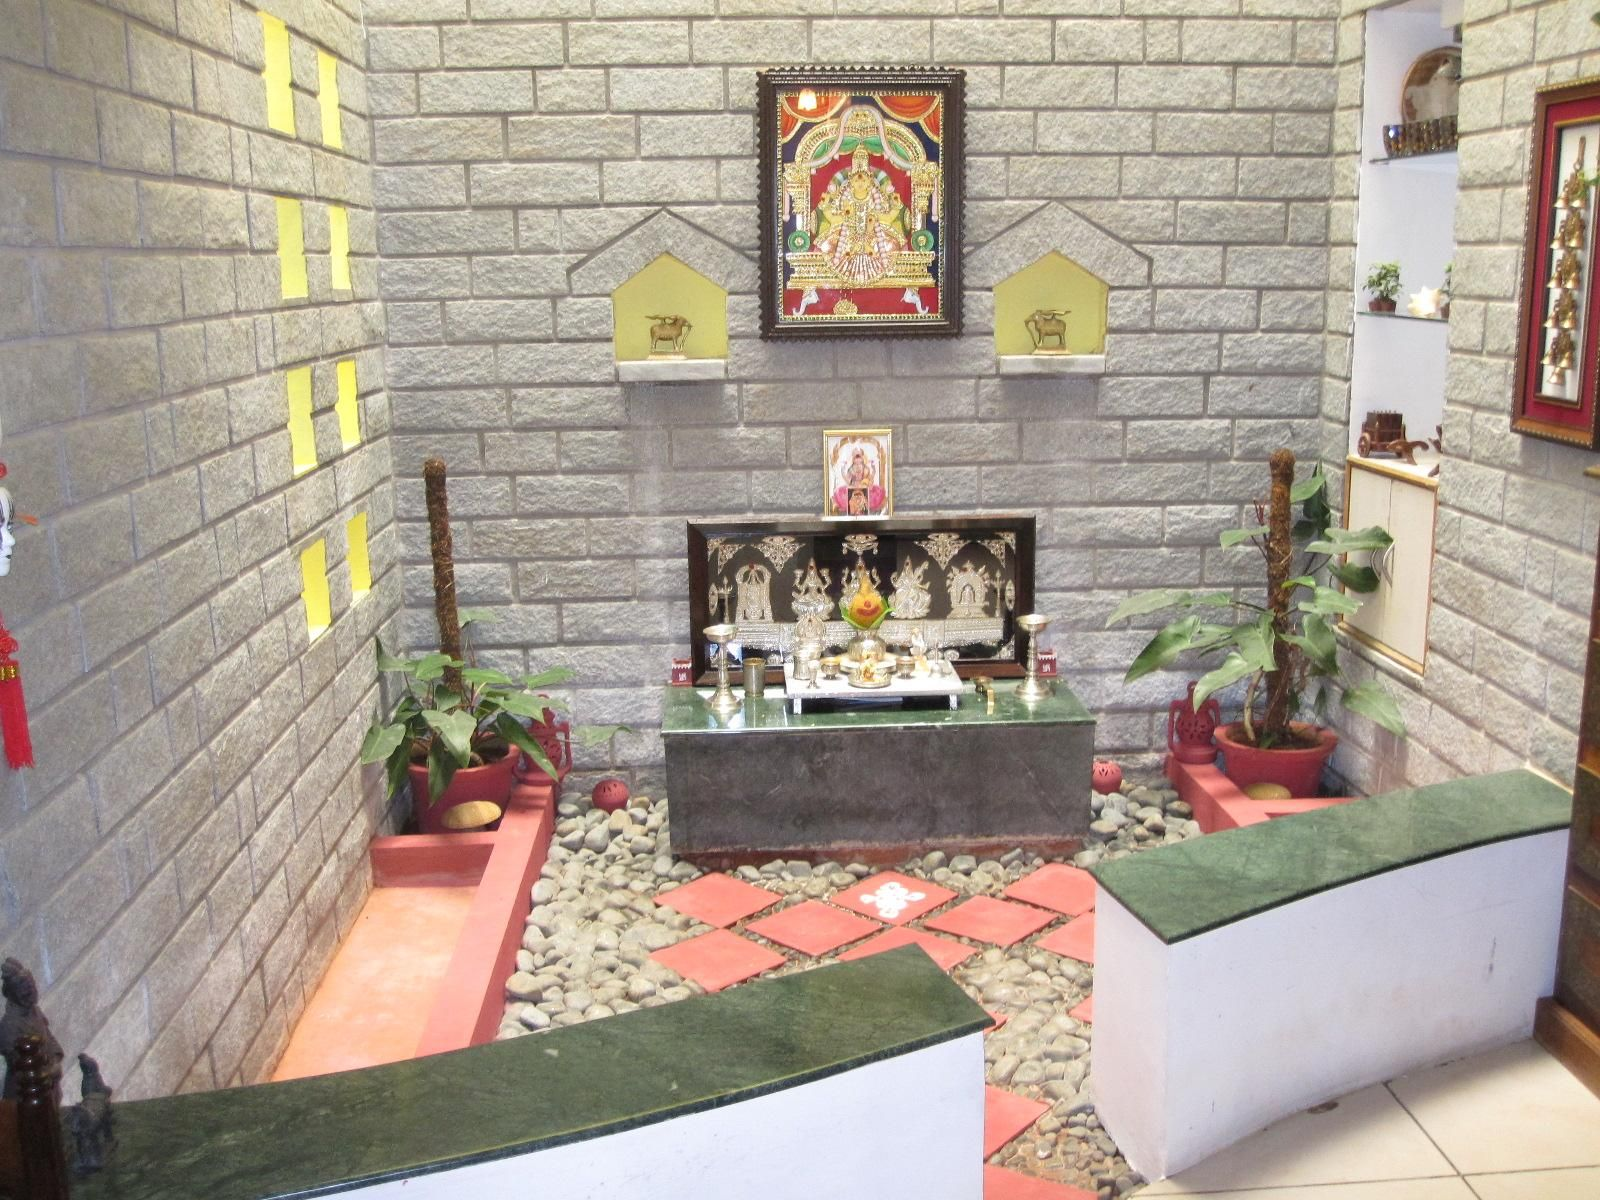 Prayer Room Design Ideas Part - 30: Prayer Room Design Ideas For Home Read More: Http://ghar360.com